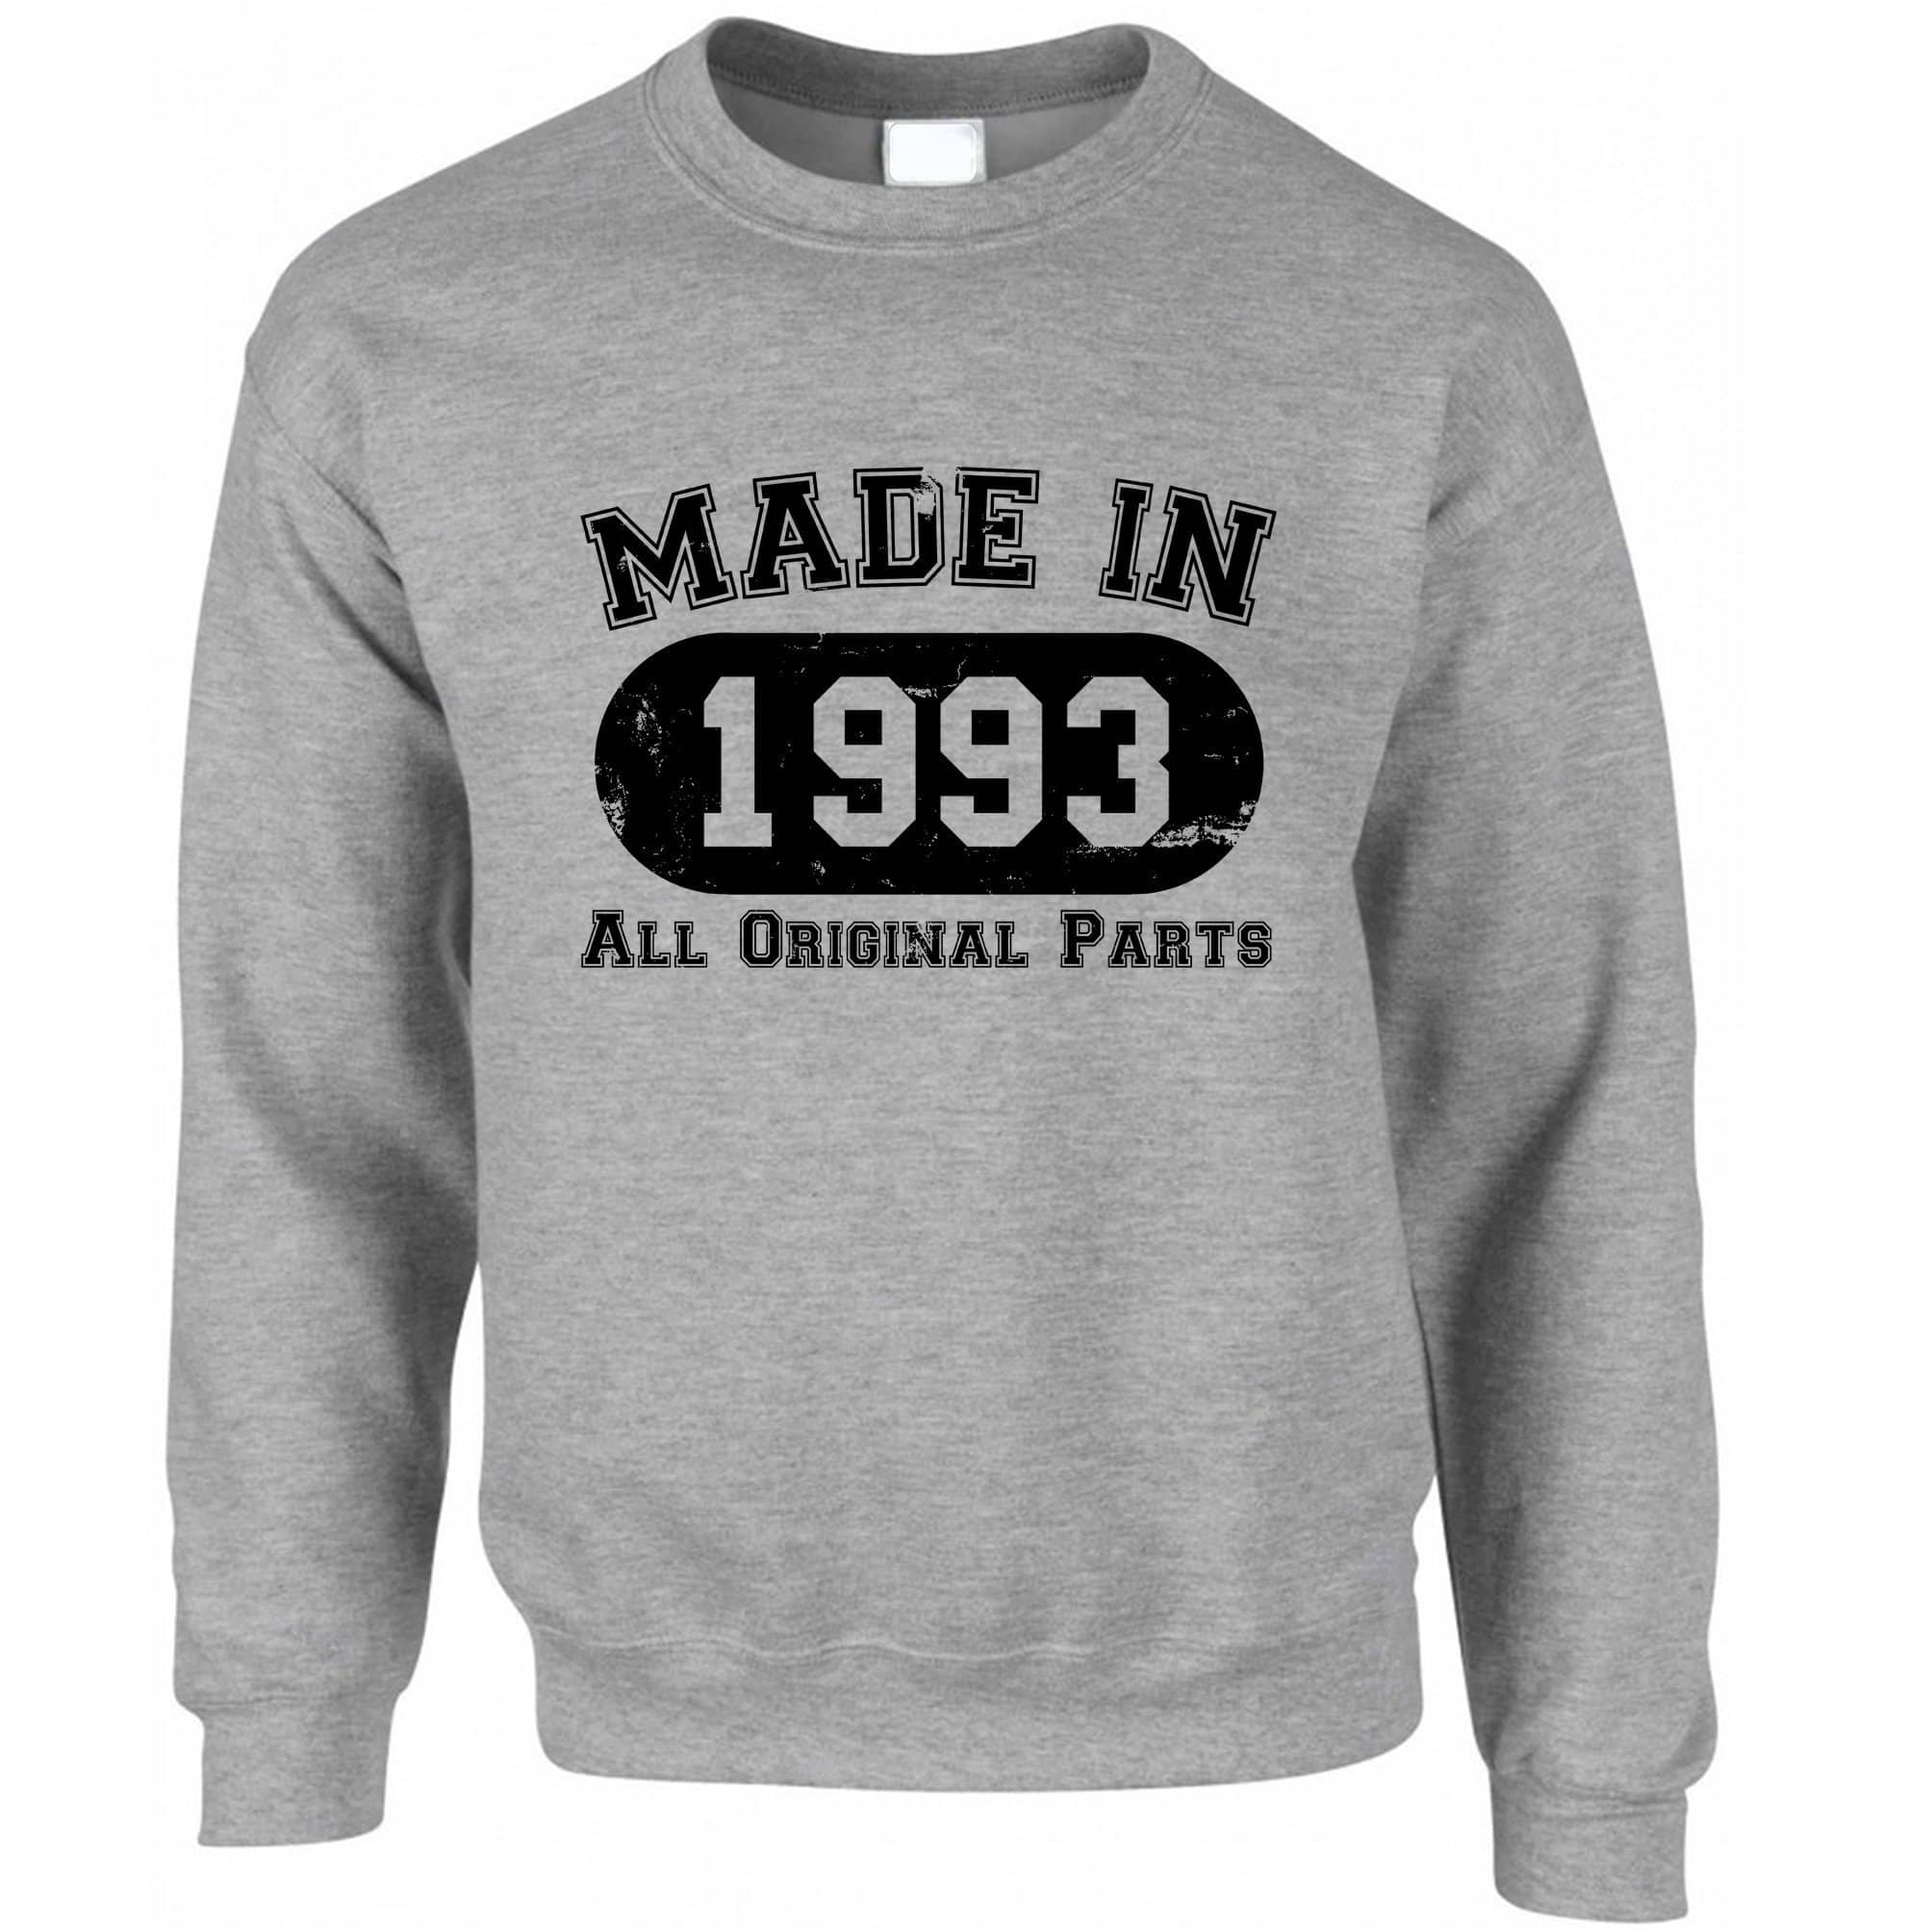 Made in 1993 All Original Parts Sweatshirt Jumper [Distressed]